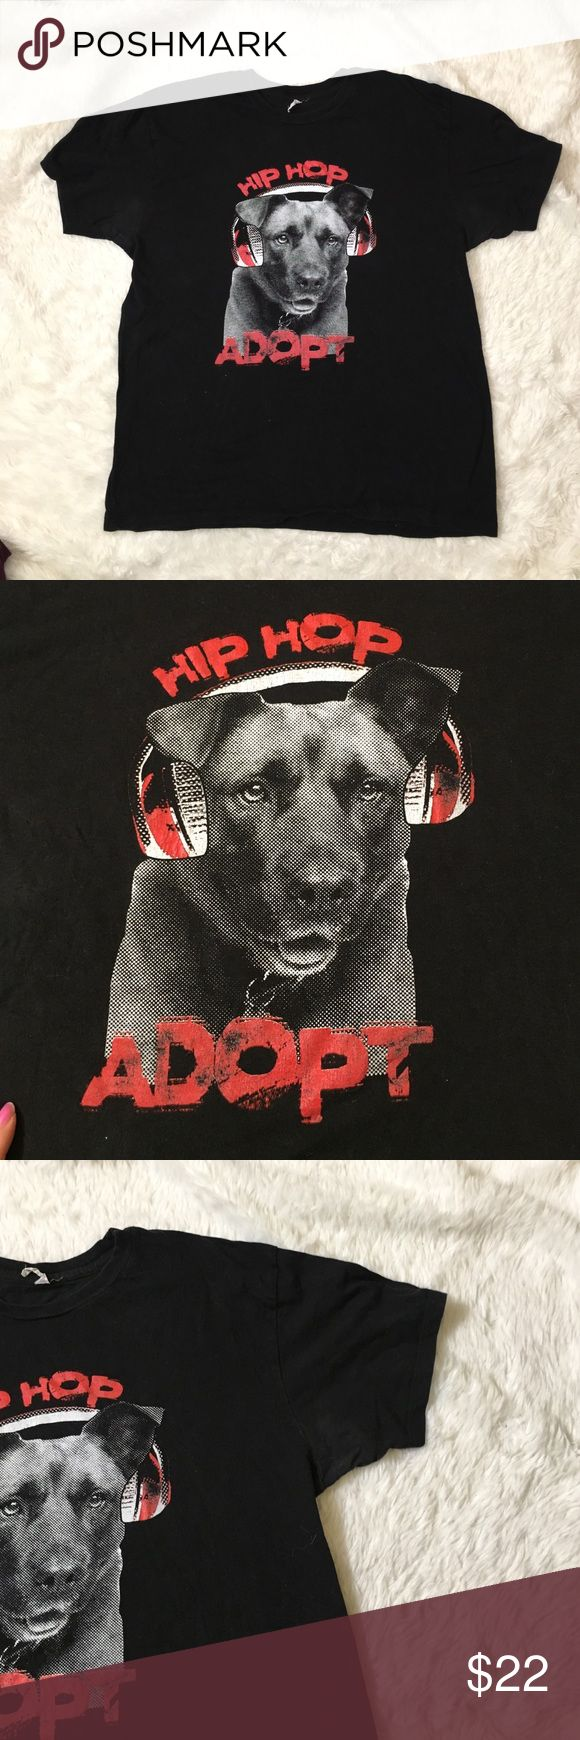 Hip pop adopt dog black tee Black dog tee with the saying hip pop adopt. Support adoption alstyle Shirts Tees - Short Sleeve